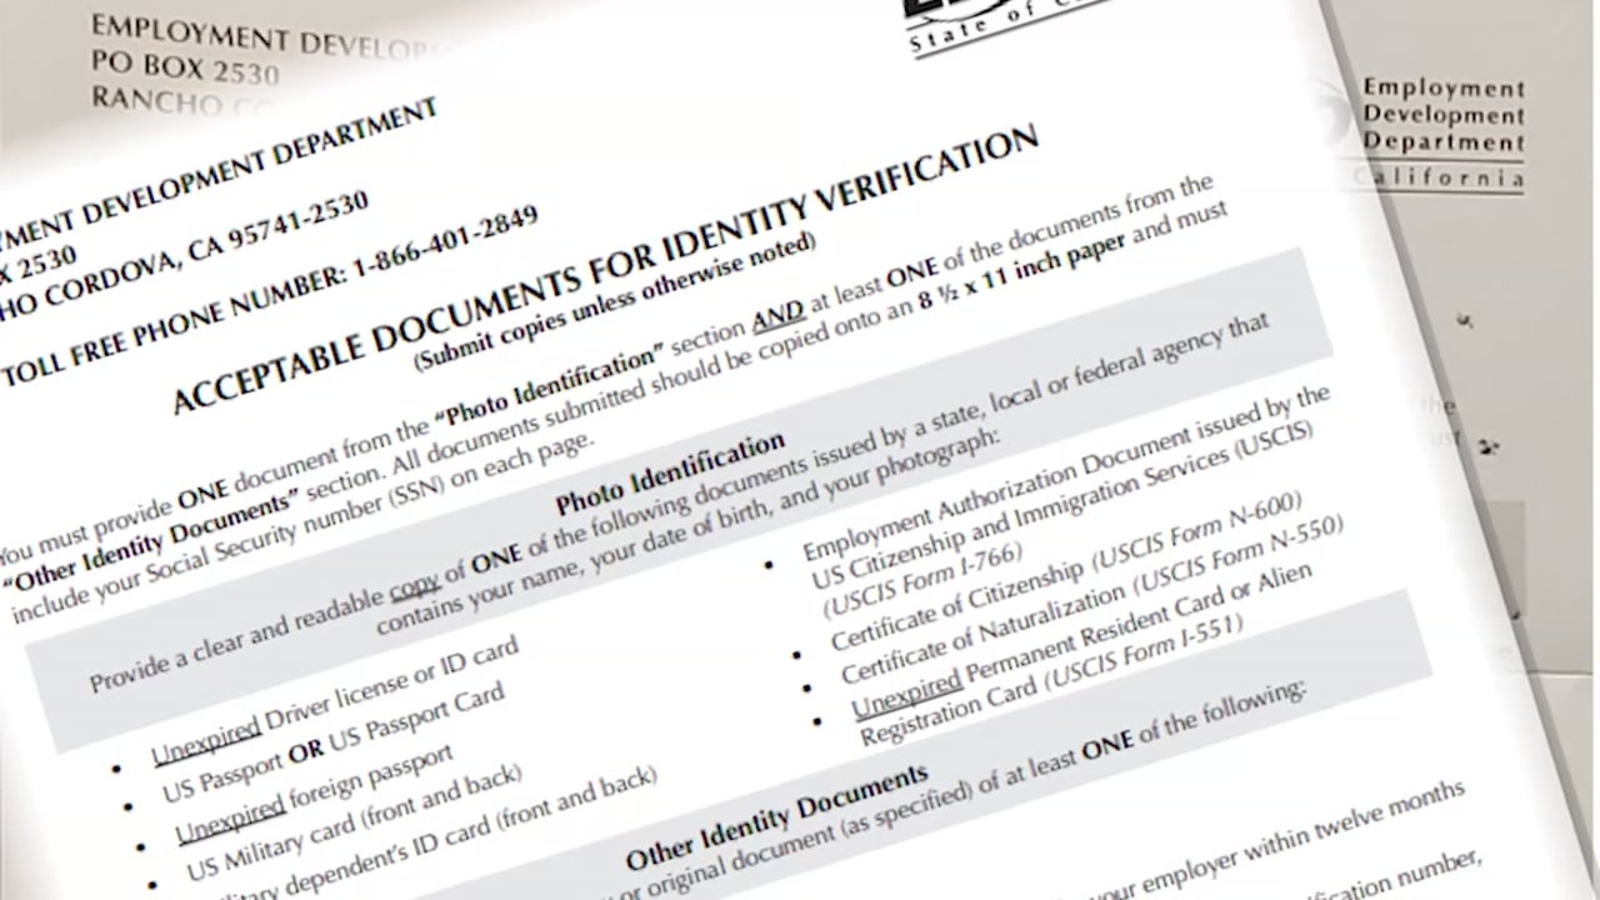 California Unemployment Edd Shuts Down 350 000 Accounts For Suspected Fraud But Legitimate Workers Still Left With No Money In Their Account Abc7 San Francisco